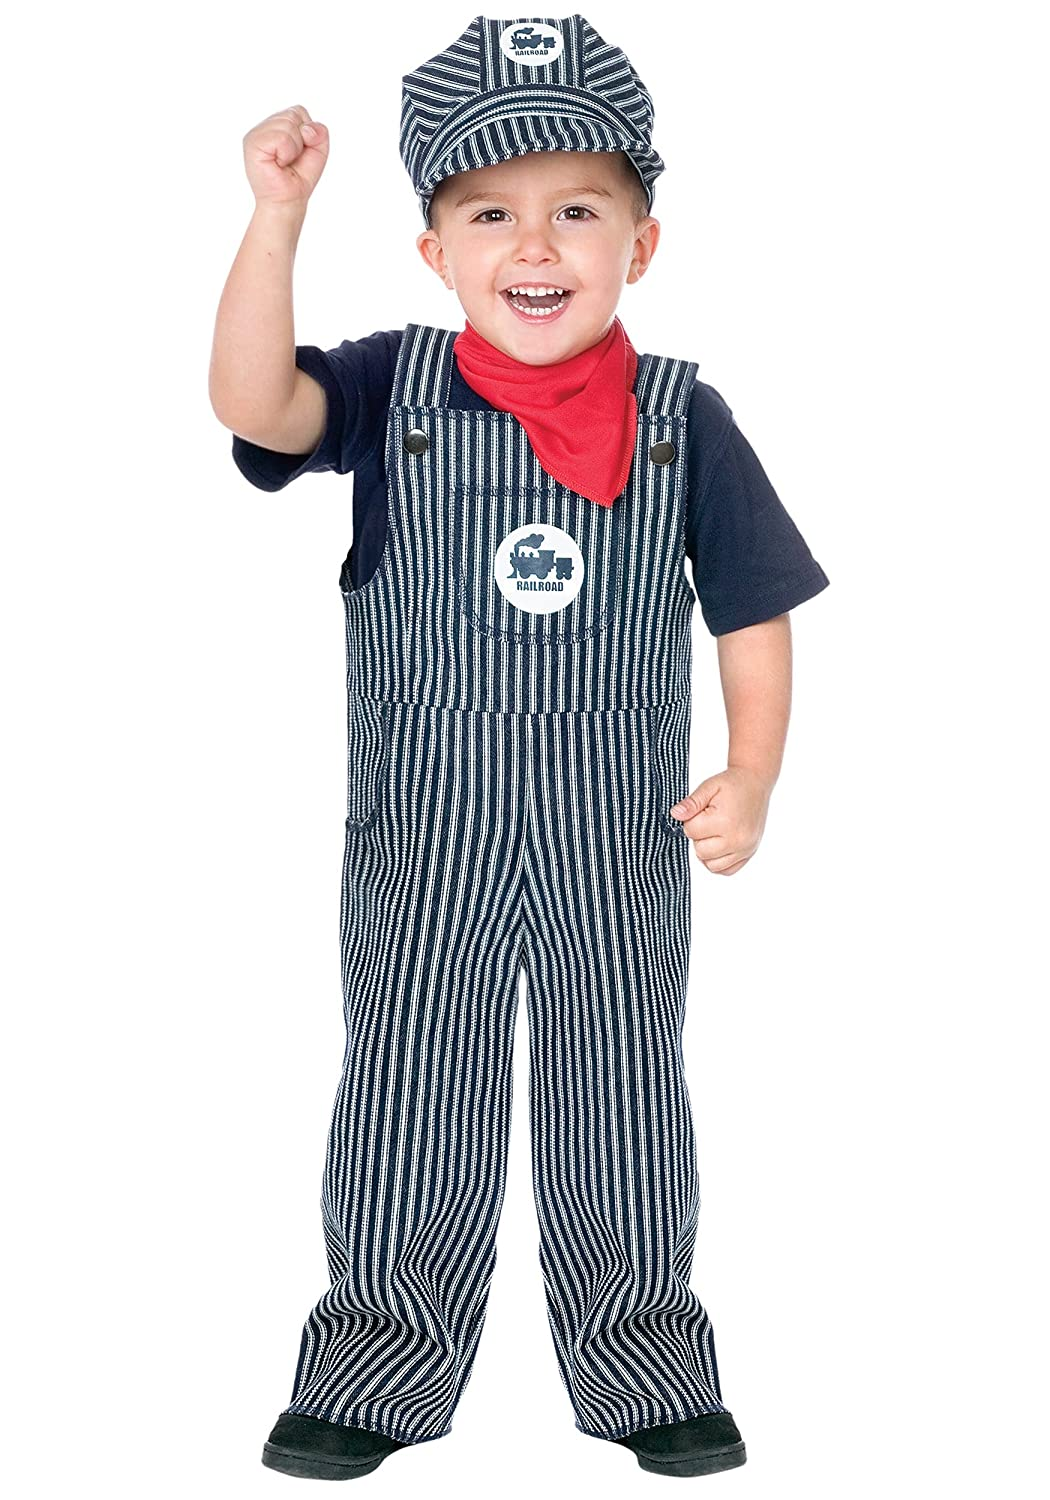 fc083fb95c Amazon.com  Fun World Costumes Baby s Train Engineer Toddler Costume   Clothing